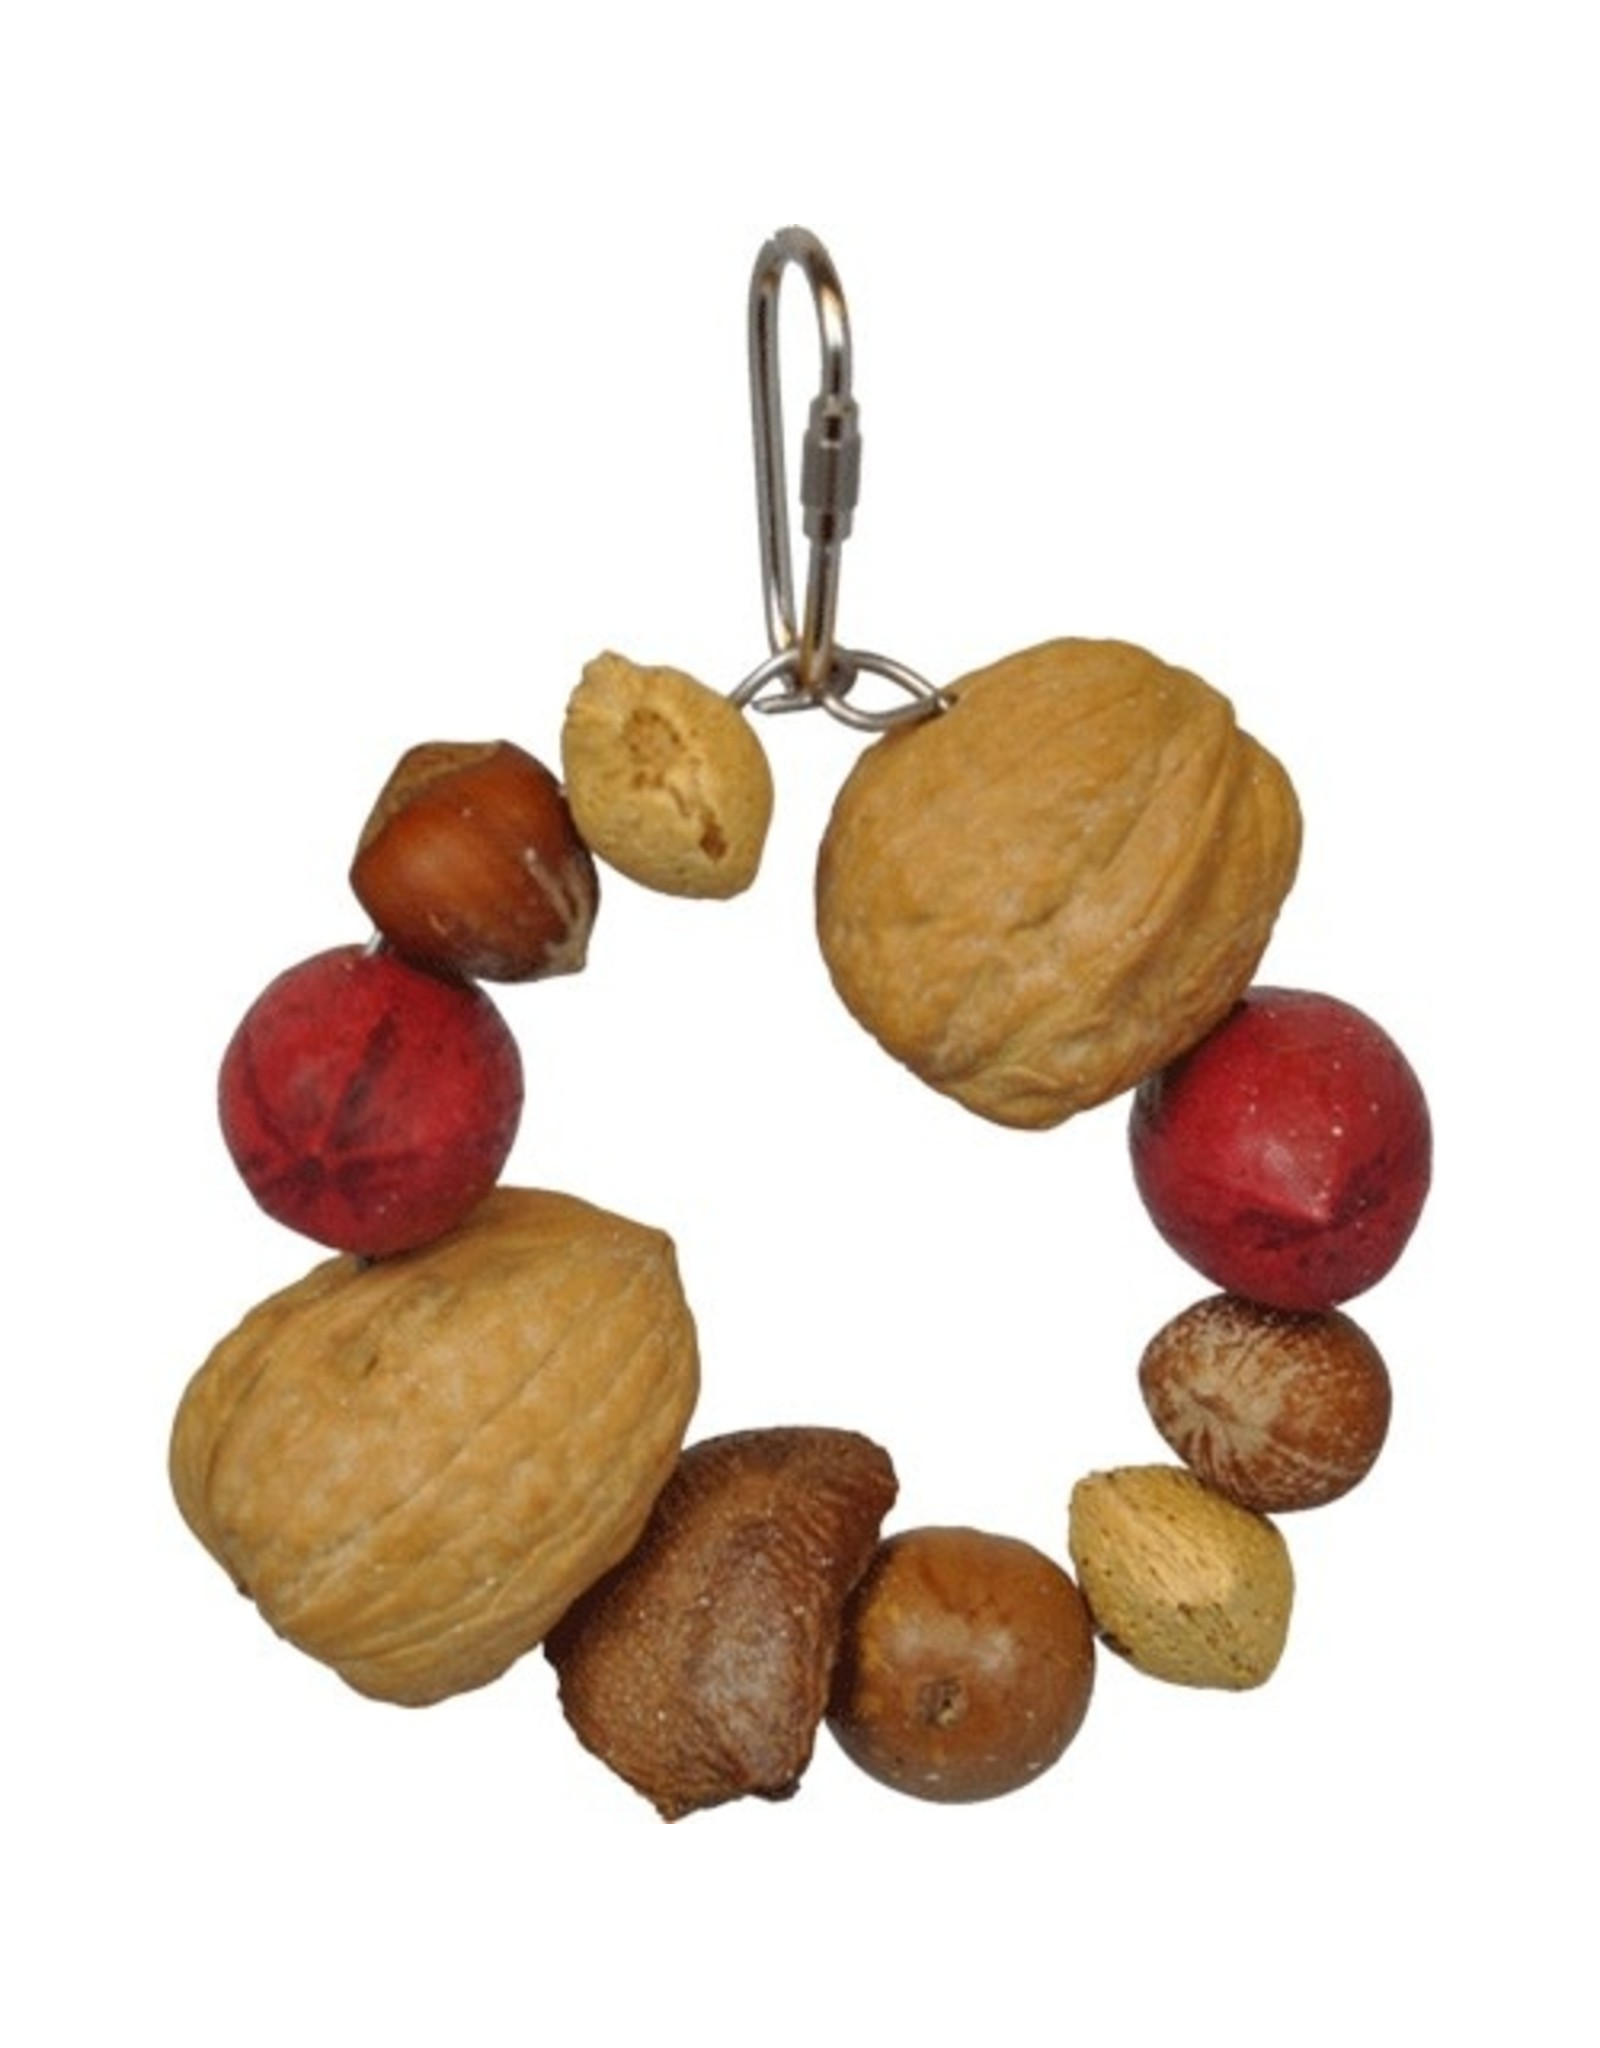 Deluxe Mixed Nut Ring Jr.